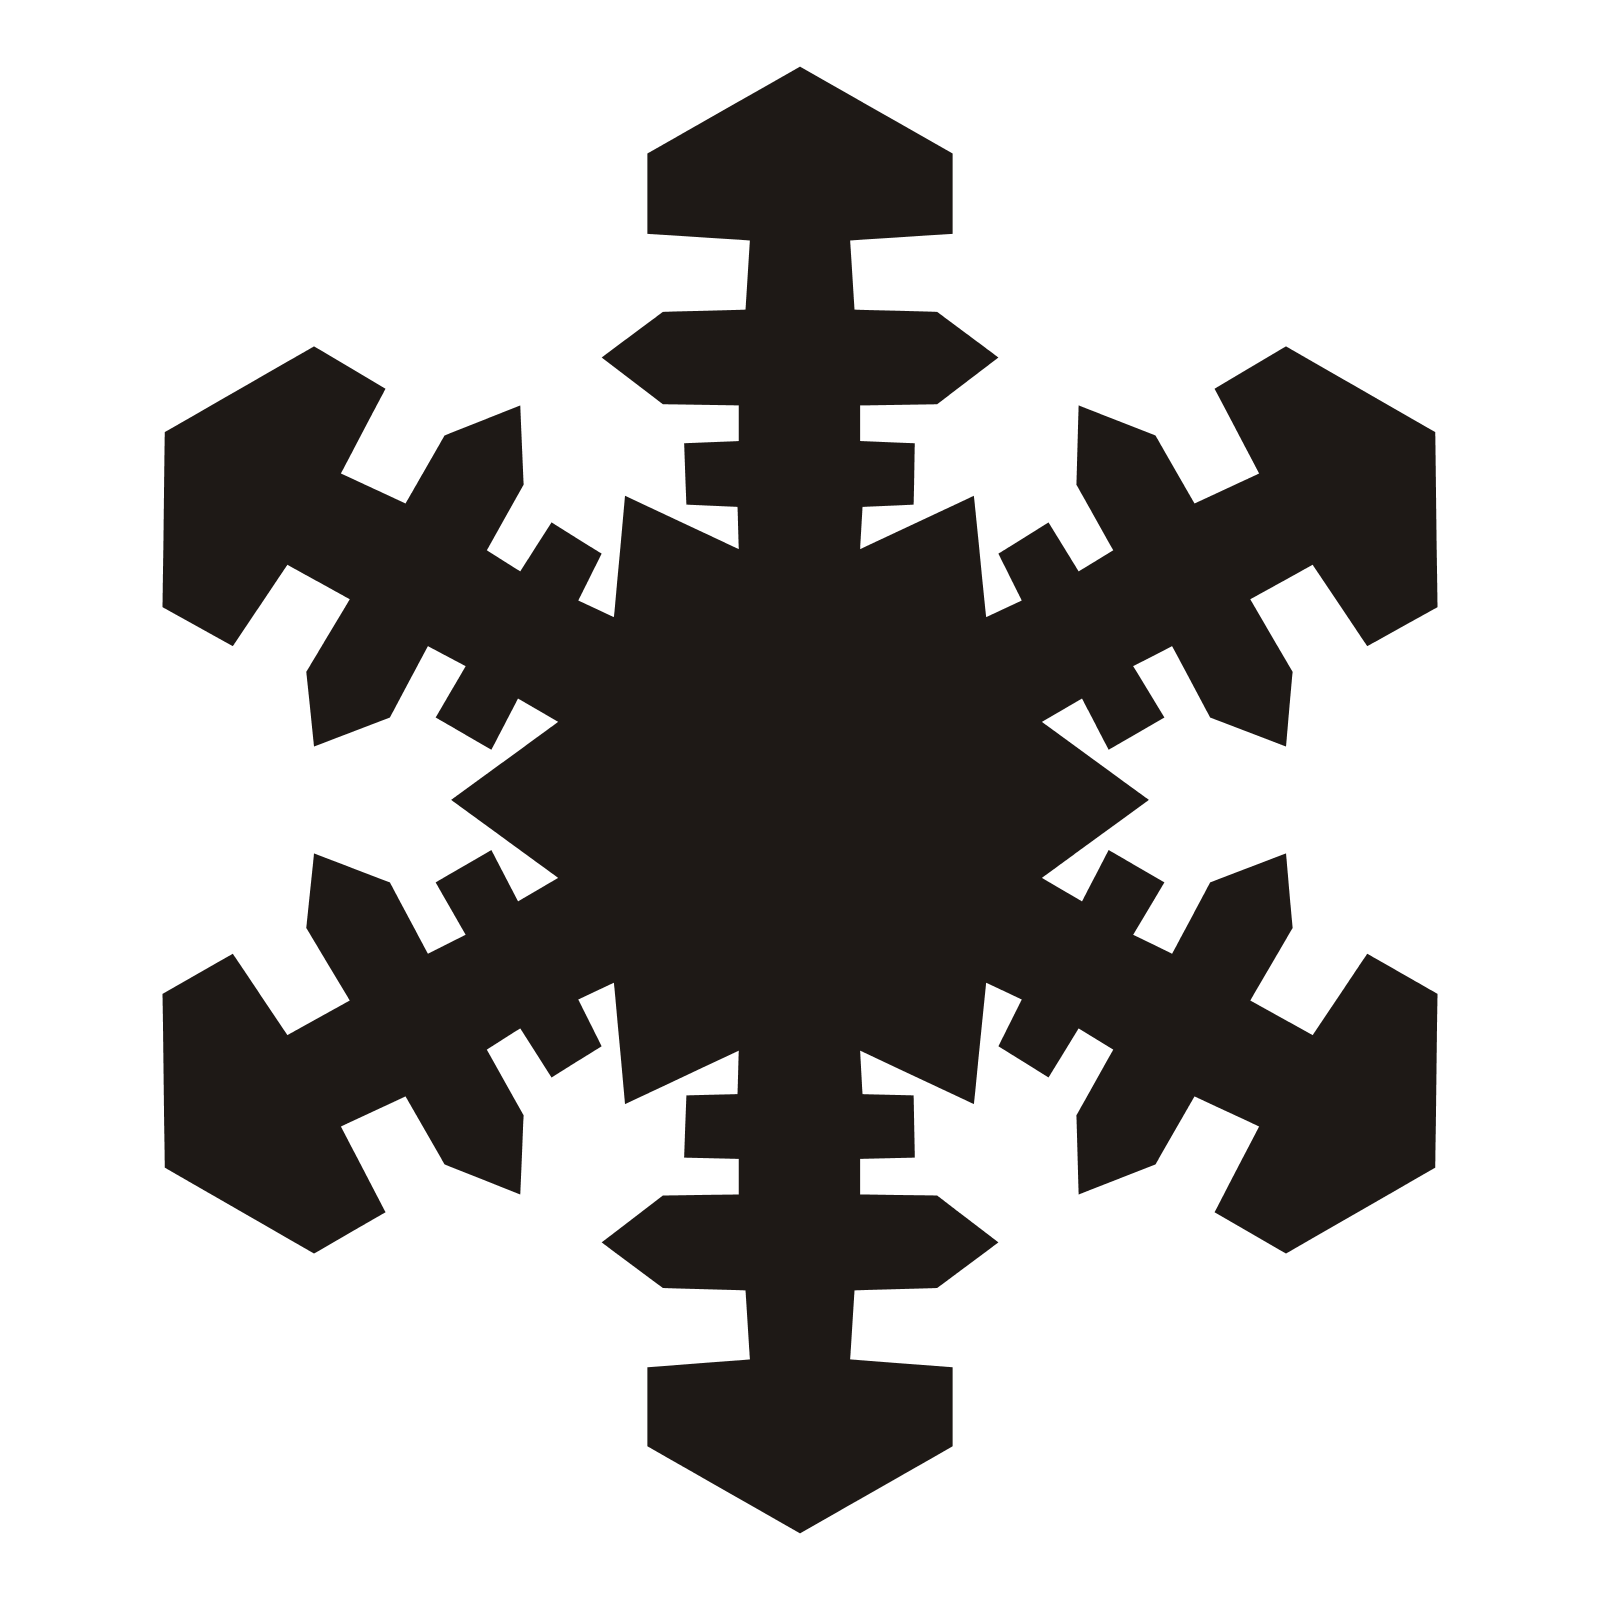 Snowflake clipart transparent background for one page clipart black and white stock Snowflake PNG image clipart black and white stock